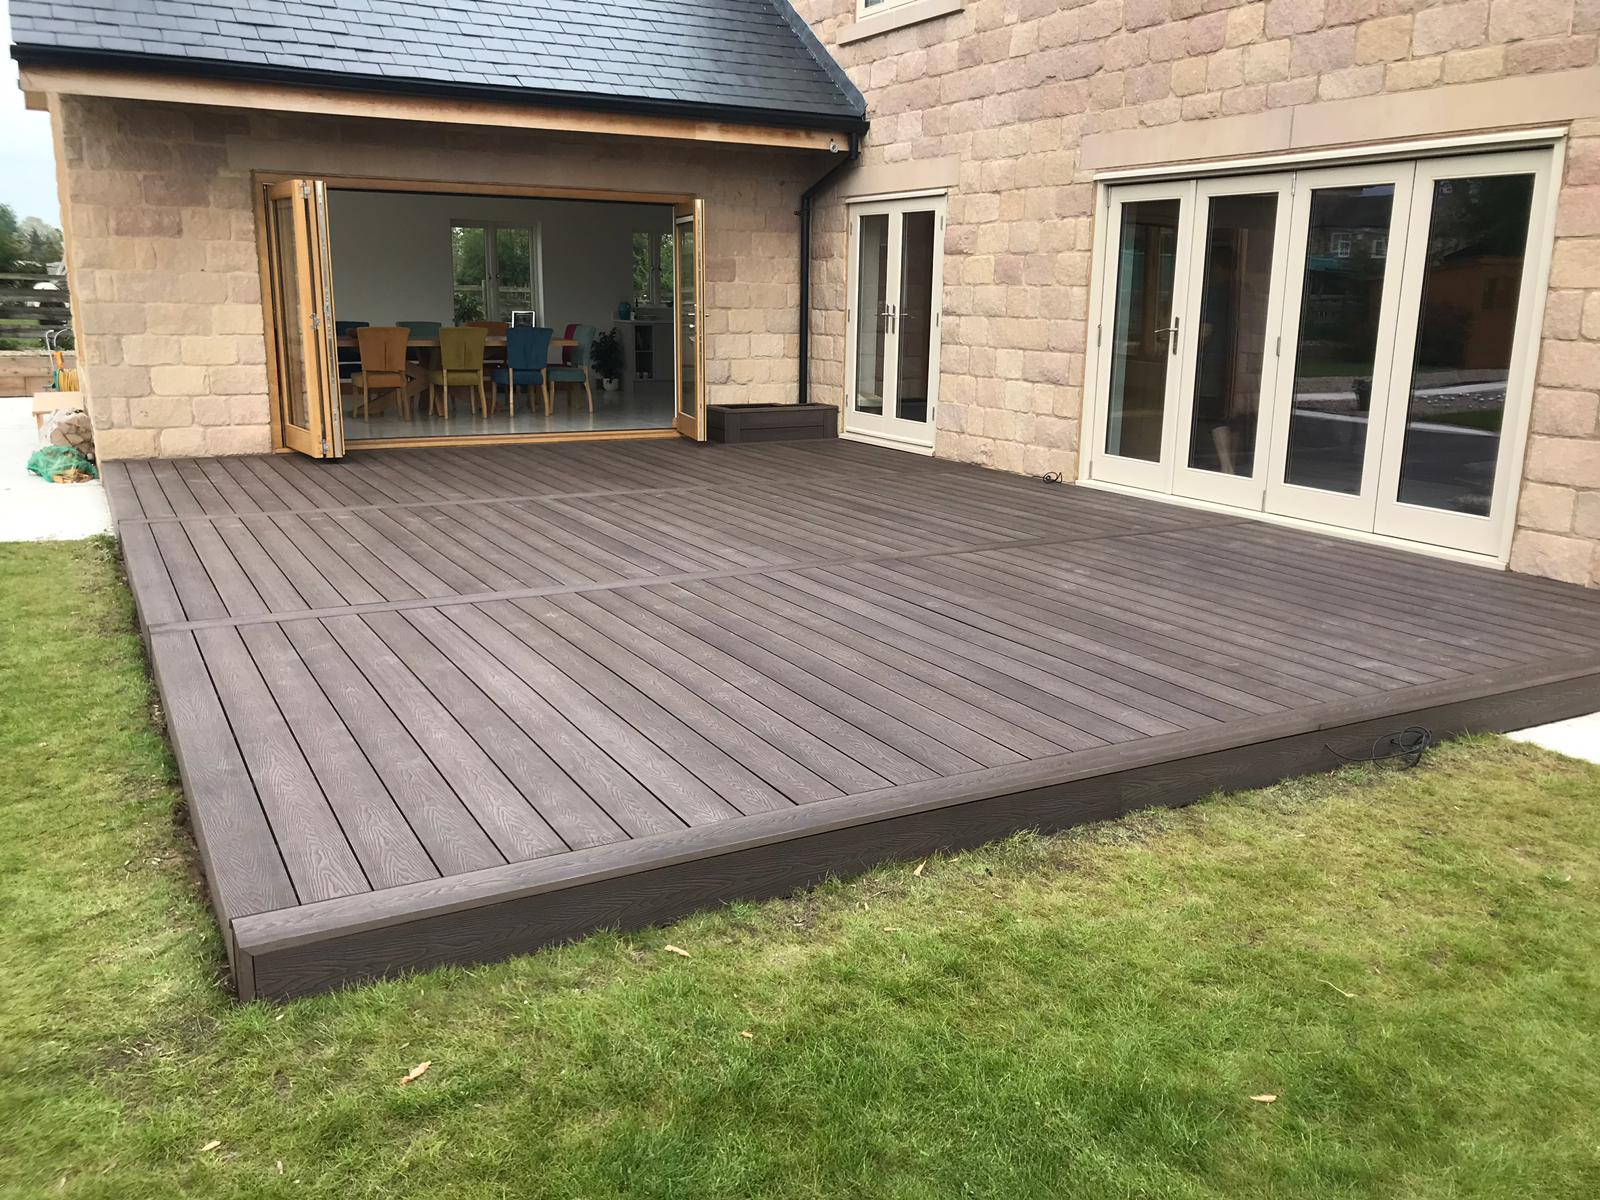 Heritage Brown Deep Embossed Wood grain effect Composite Decking